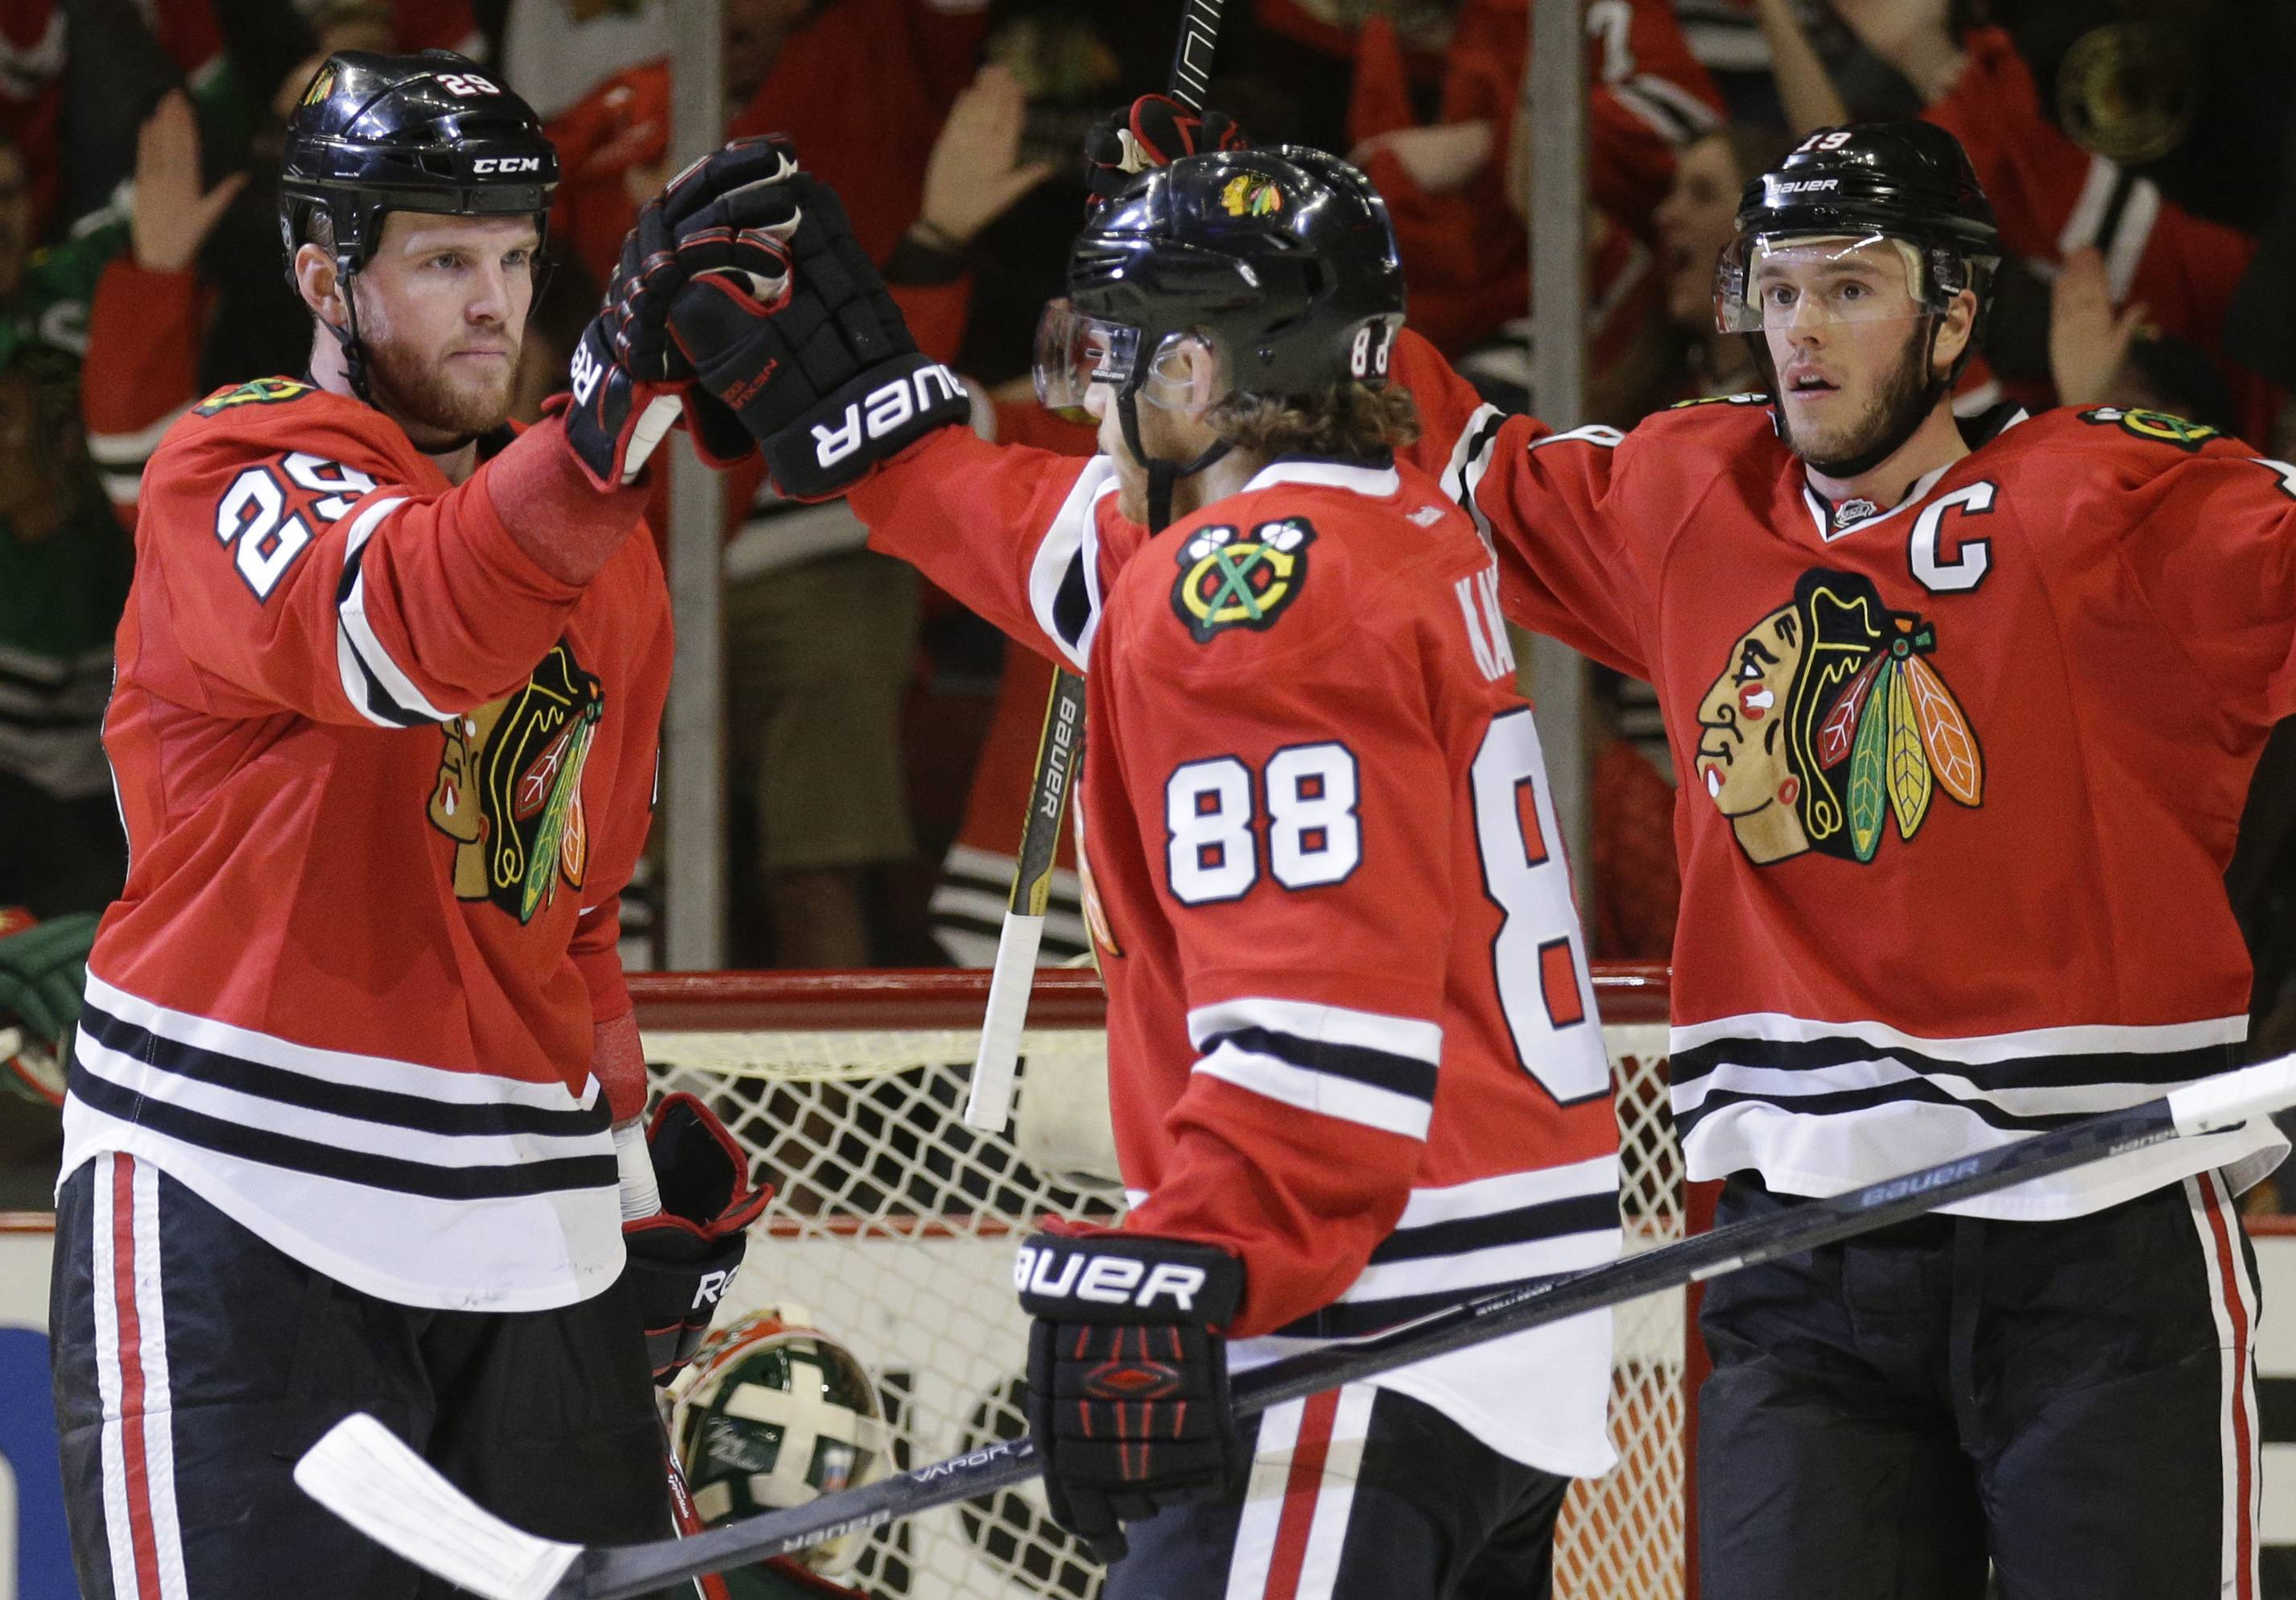 Chicago Blackhawks' Bryan Bickell (29), left, celebrates with Patrick Kane (88) and Jonathan Toews (19) after scoring his goal against the Minnesota Wild during the second period.